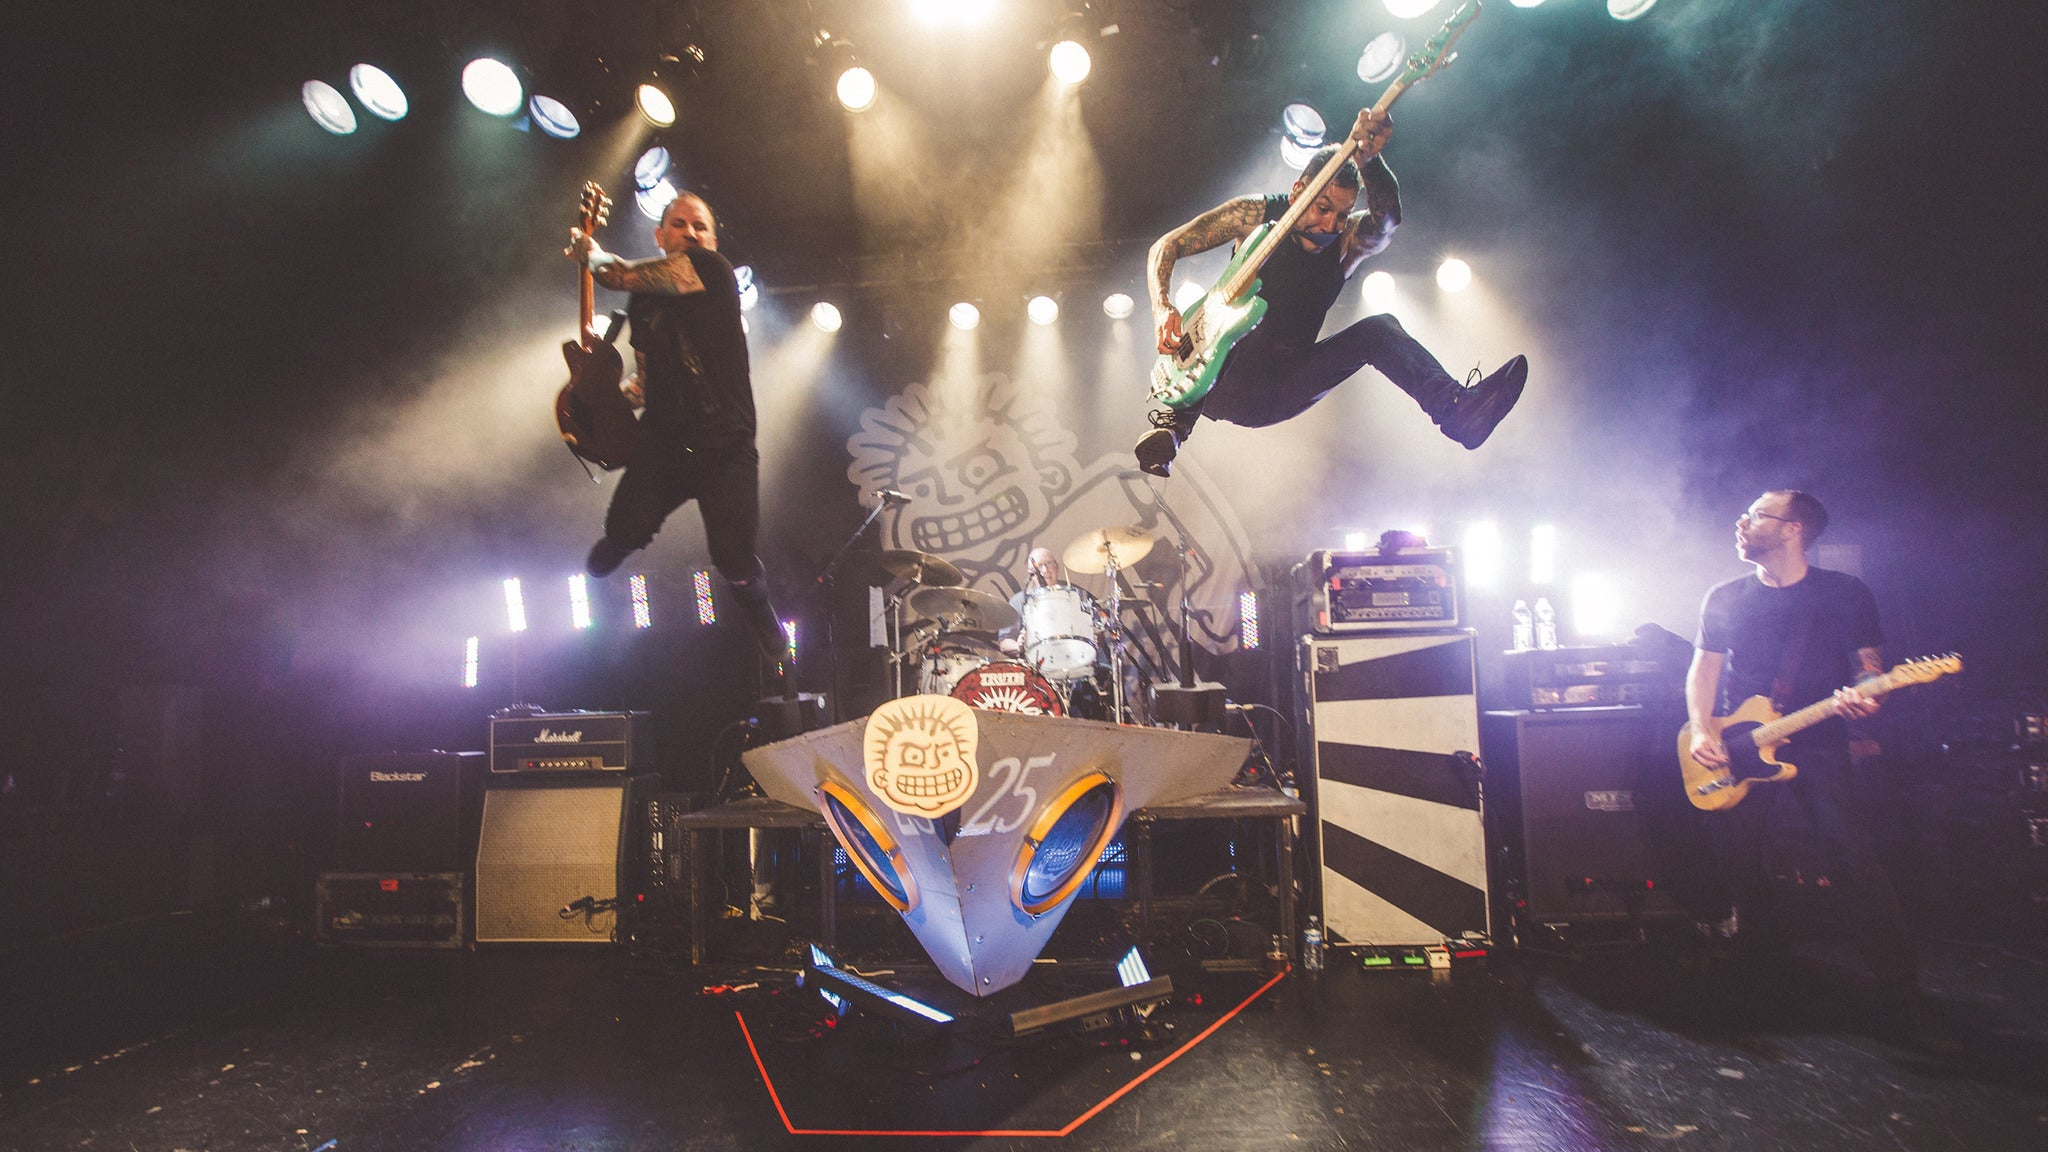 MxPx w/ Teenage Bottlerocket at Gothic Theatre